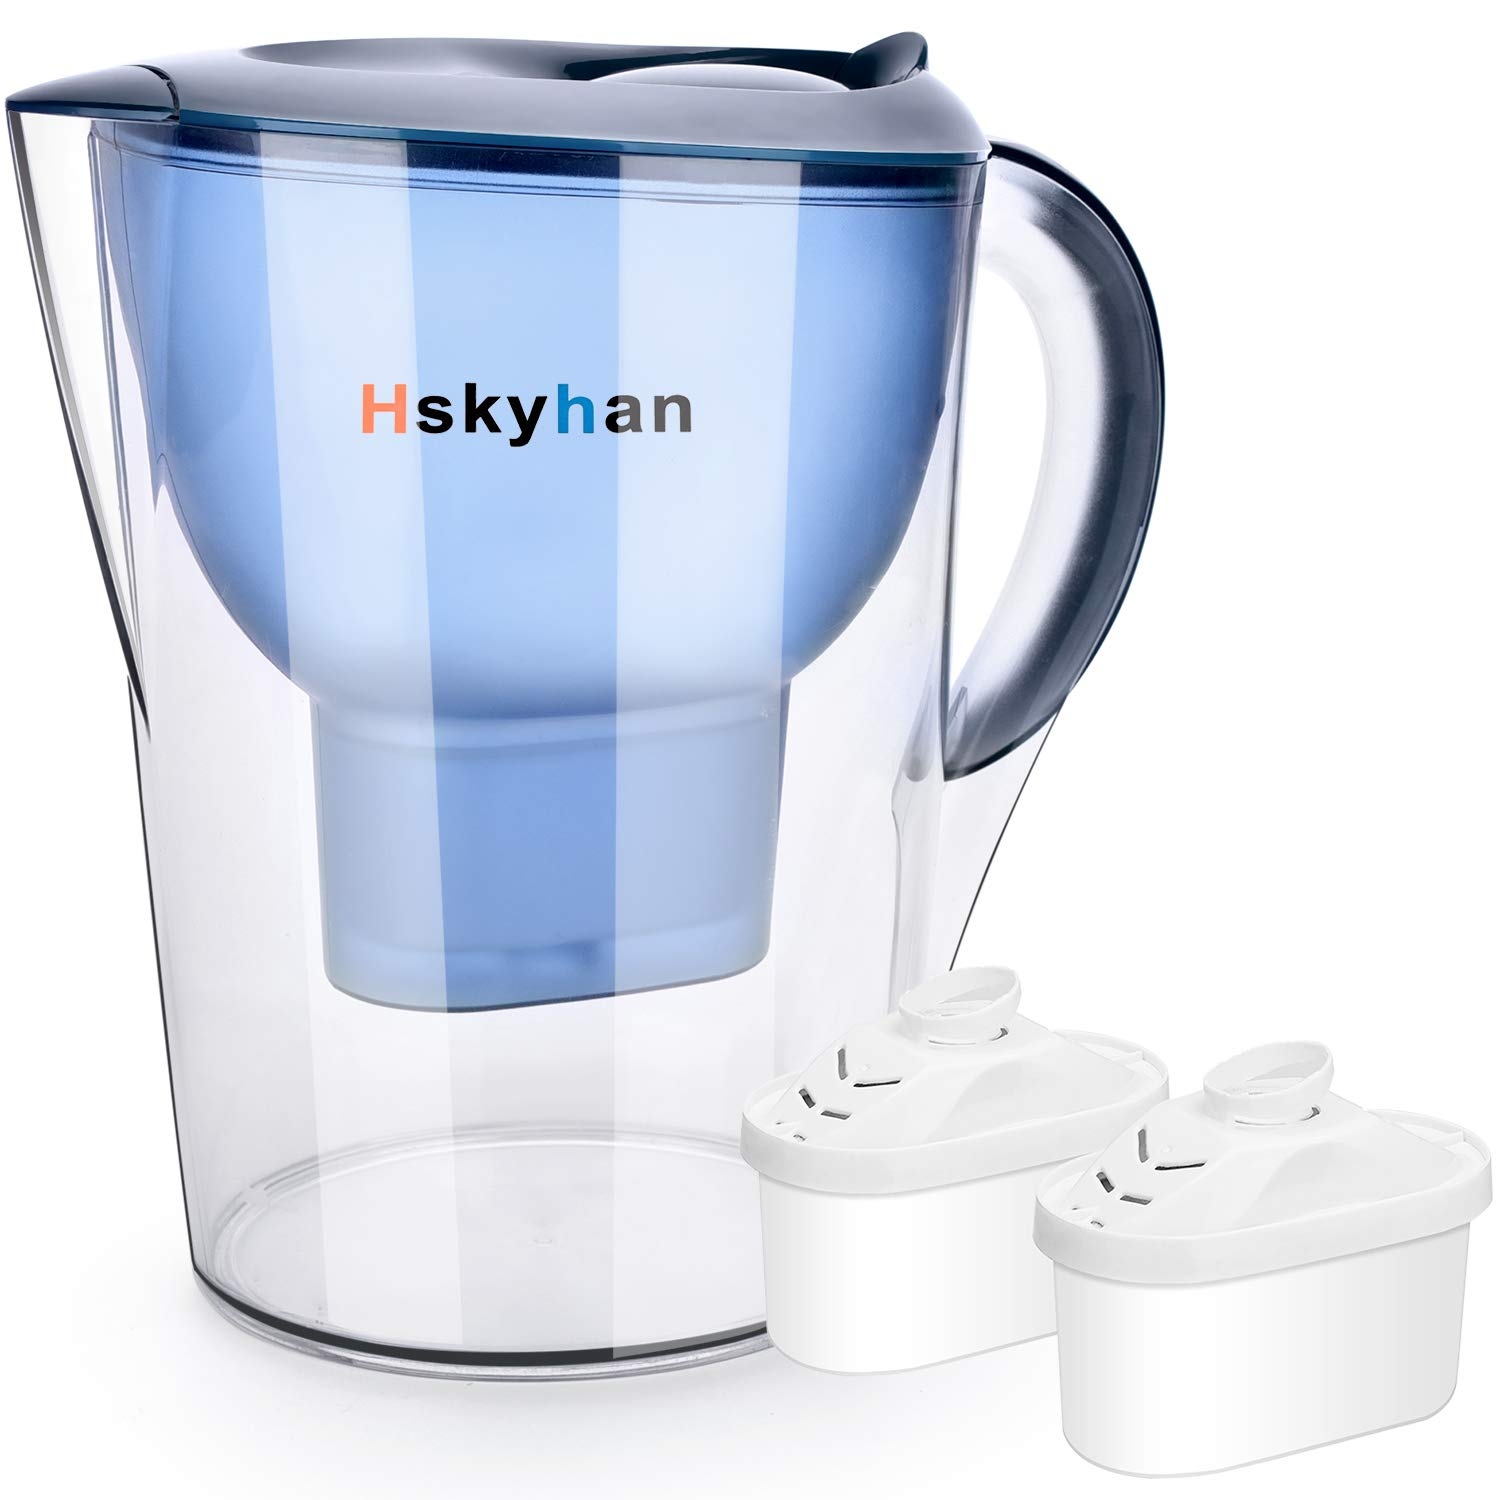 Hskyhan Alkaline Water Filter Pitcher - 3.5 Liters Improve PH, 2 Filters Included, 7 Stage Filteration System to Purify, Blue by Hskyhan